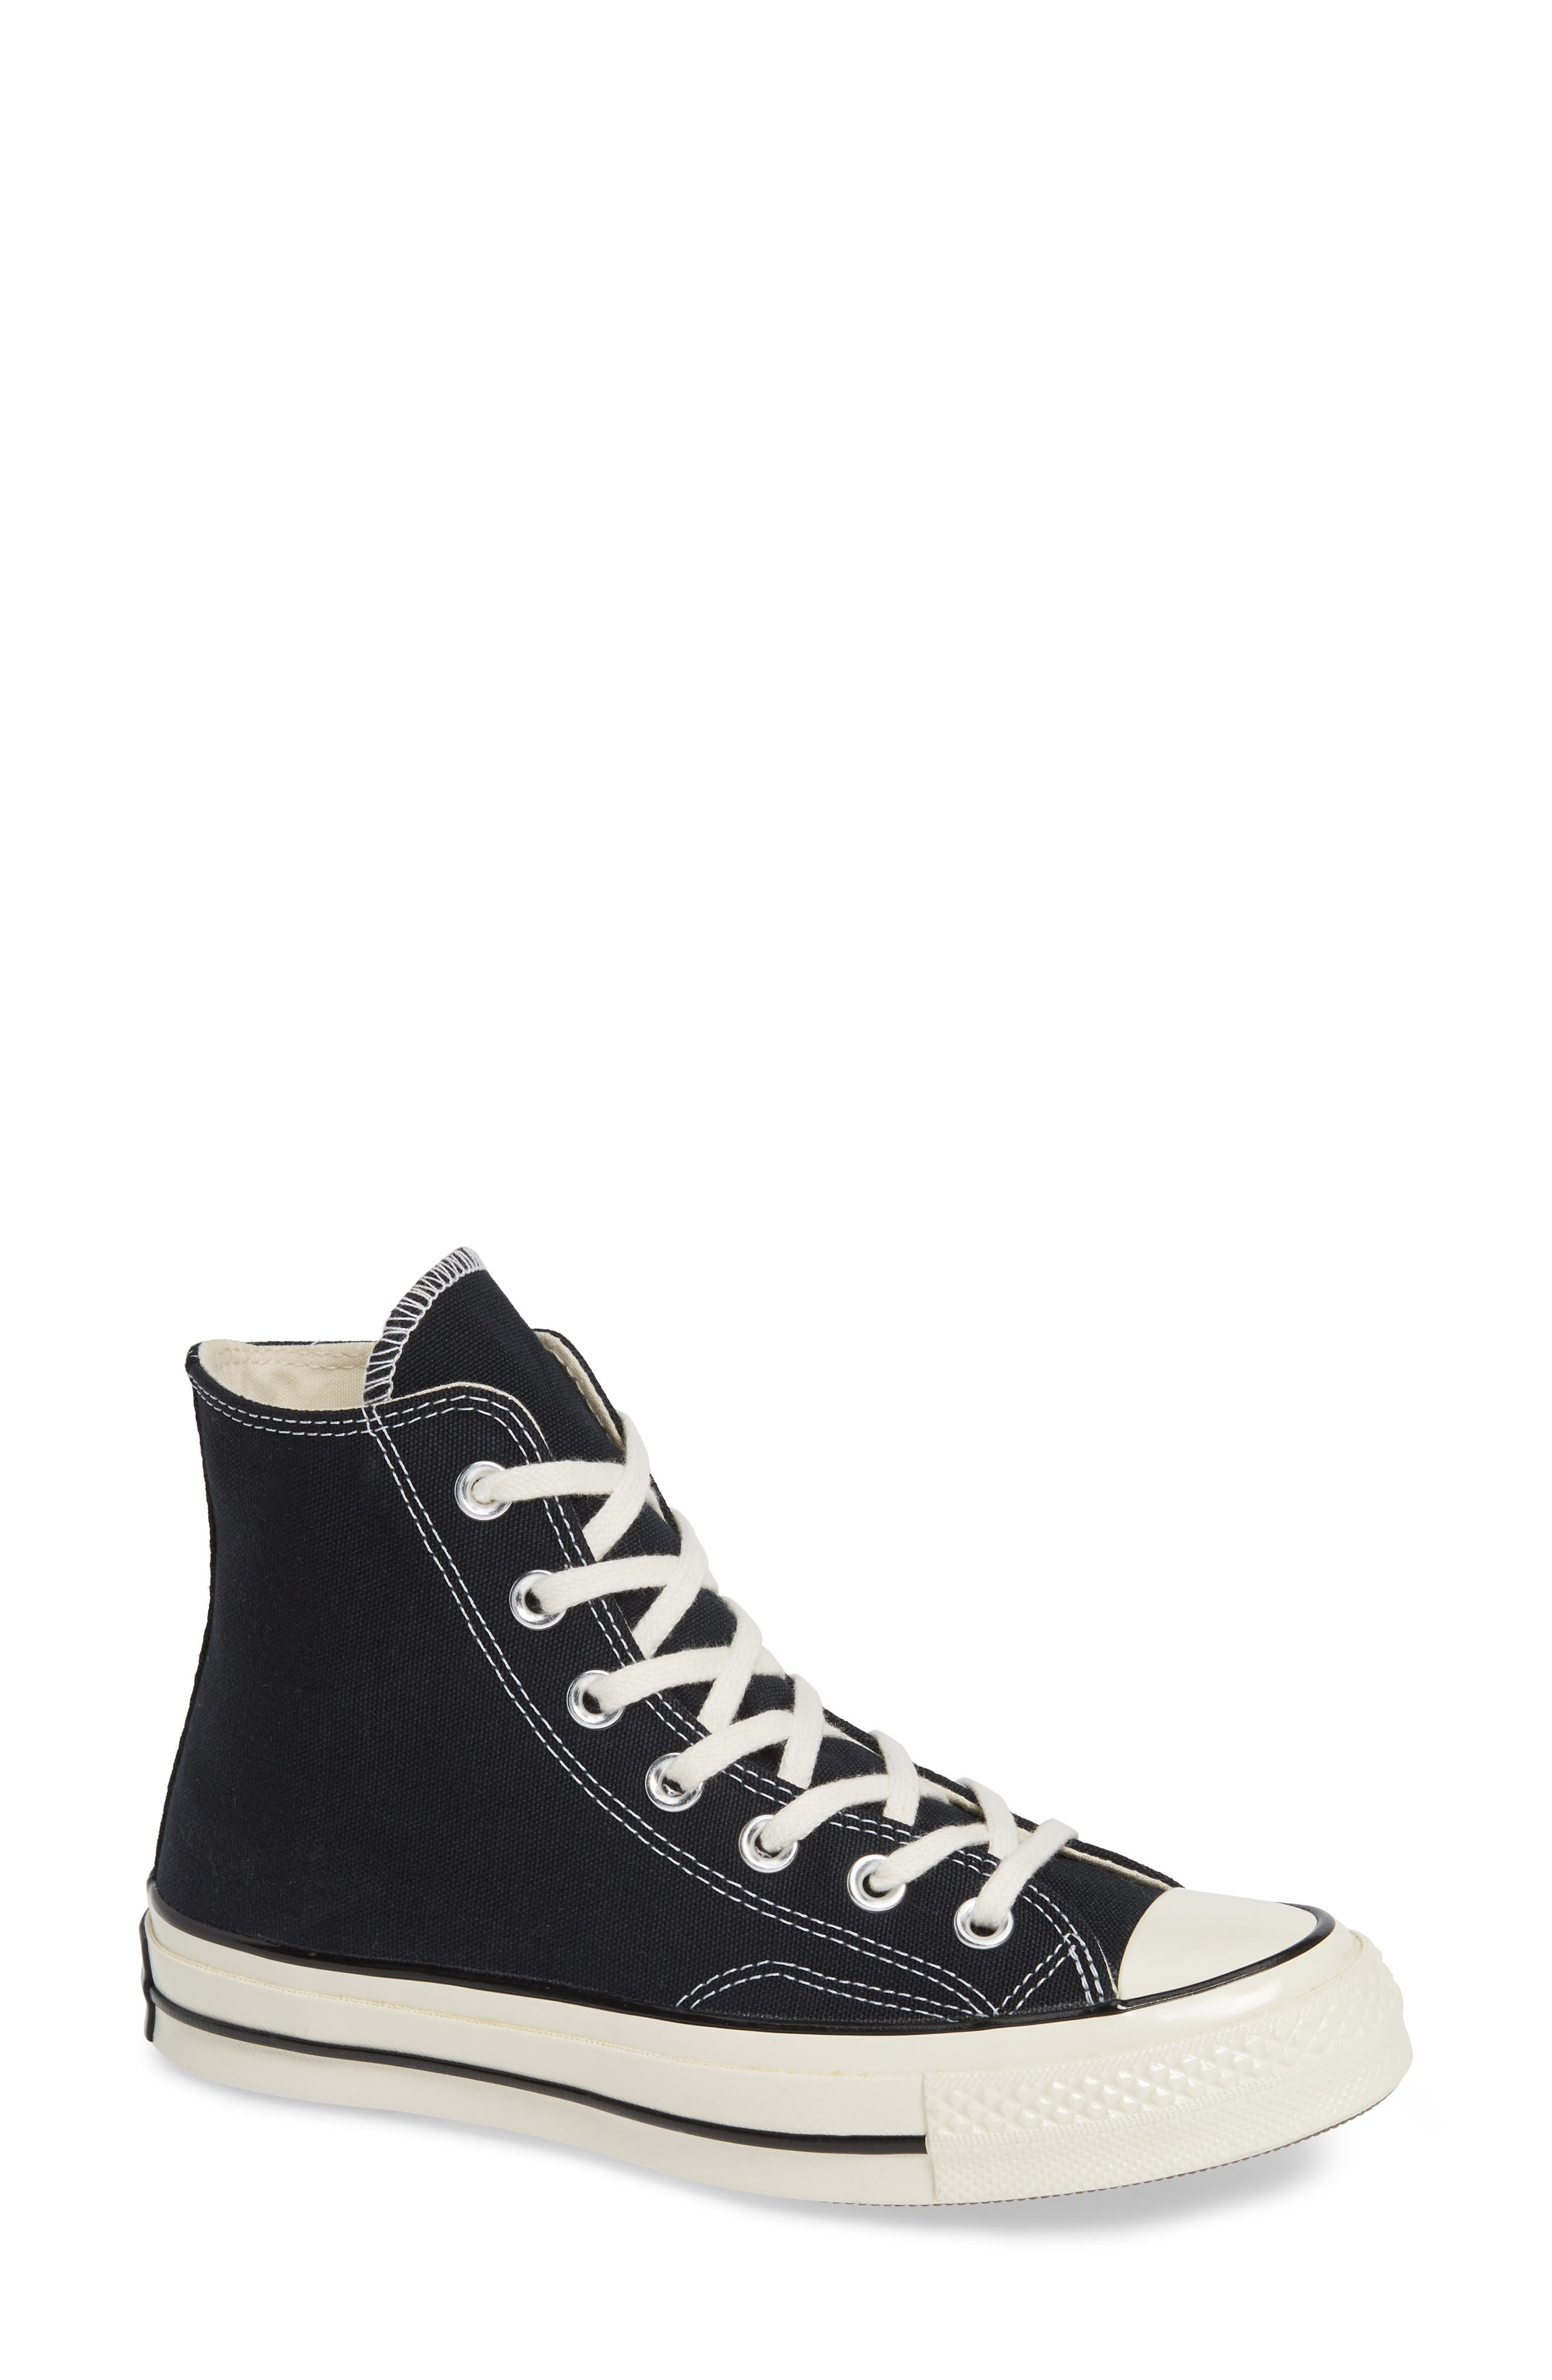 CONVERSE, Chuck Taylor<sup>®</sup> All Star<sup>®</sup> Chuck 70 High Top Sneaker, Main thumbnail 1, color, BLACK